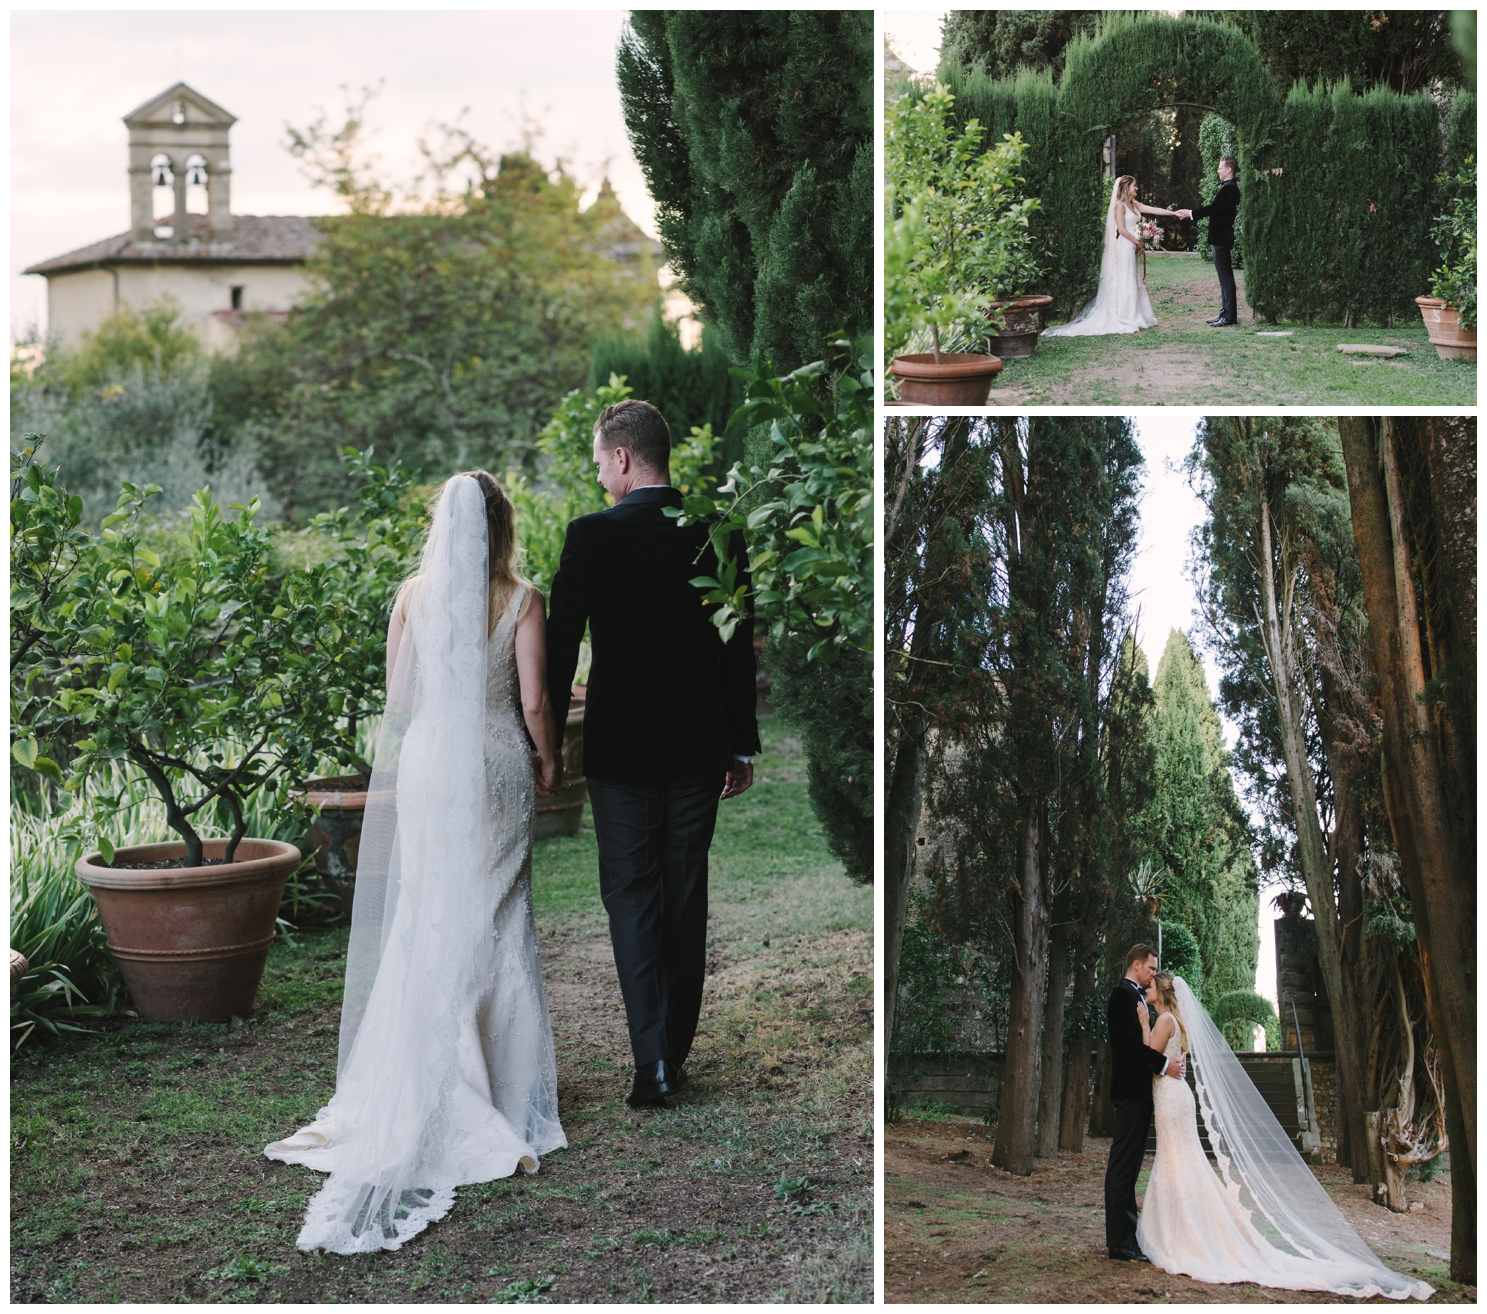 Wedding_Photographer_Tuscany_Italy_0066.jpg